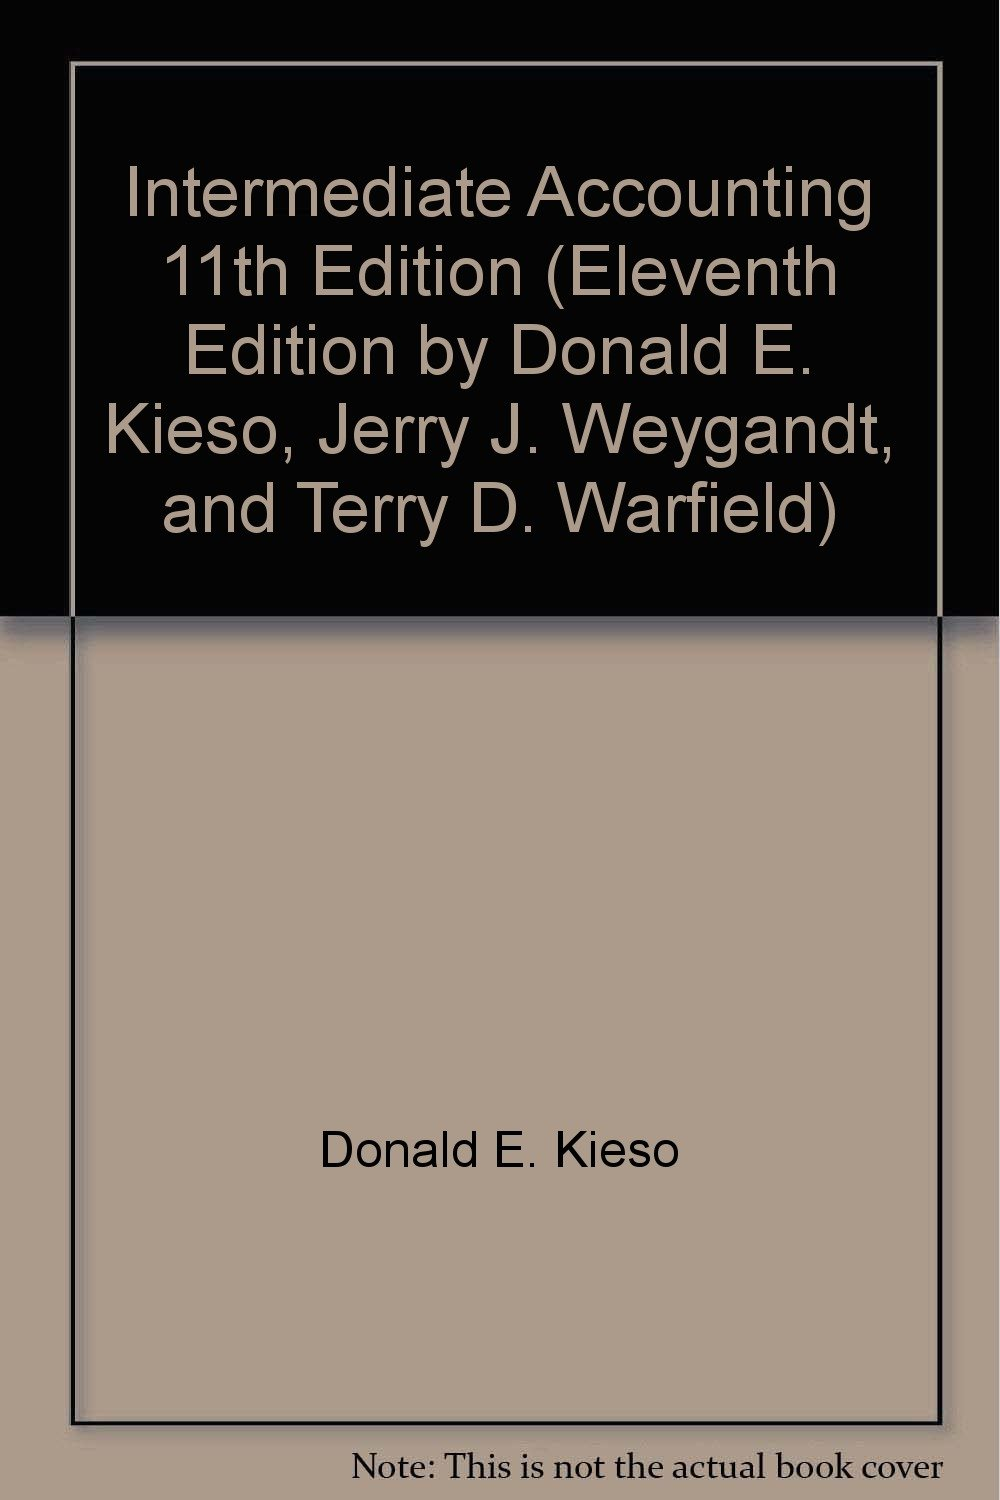 Intermediate accounting 11th edition eleventh edition by donald e intermediate accounting 11th edition eleventh edition by donald e kieso jerry j weygandt and terry d warfield amazon books fandeluxe Gallery